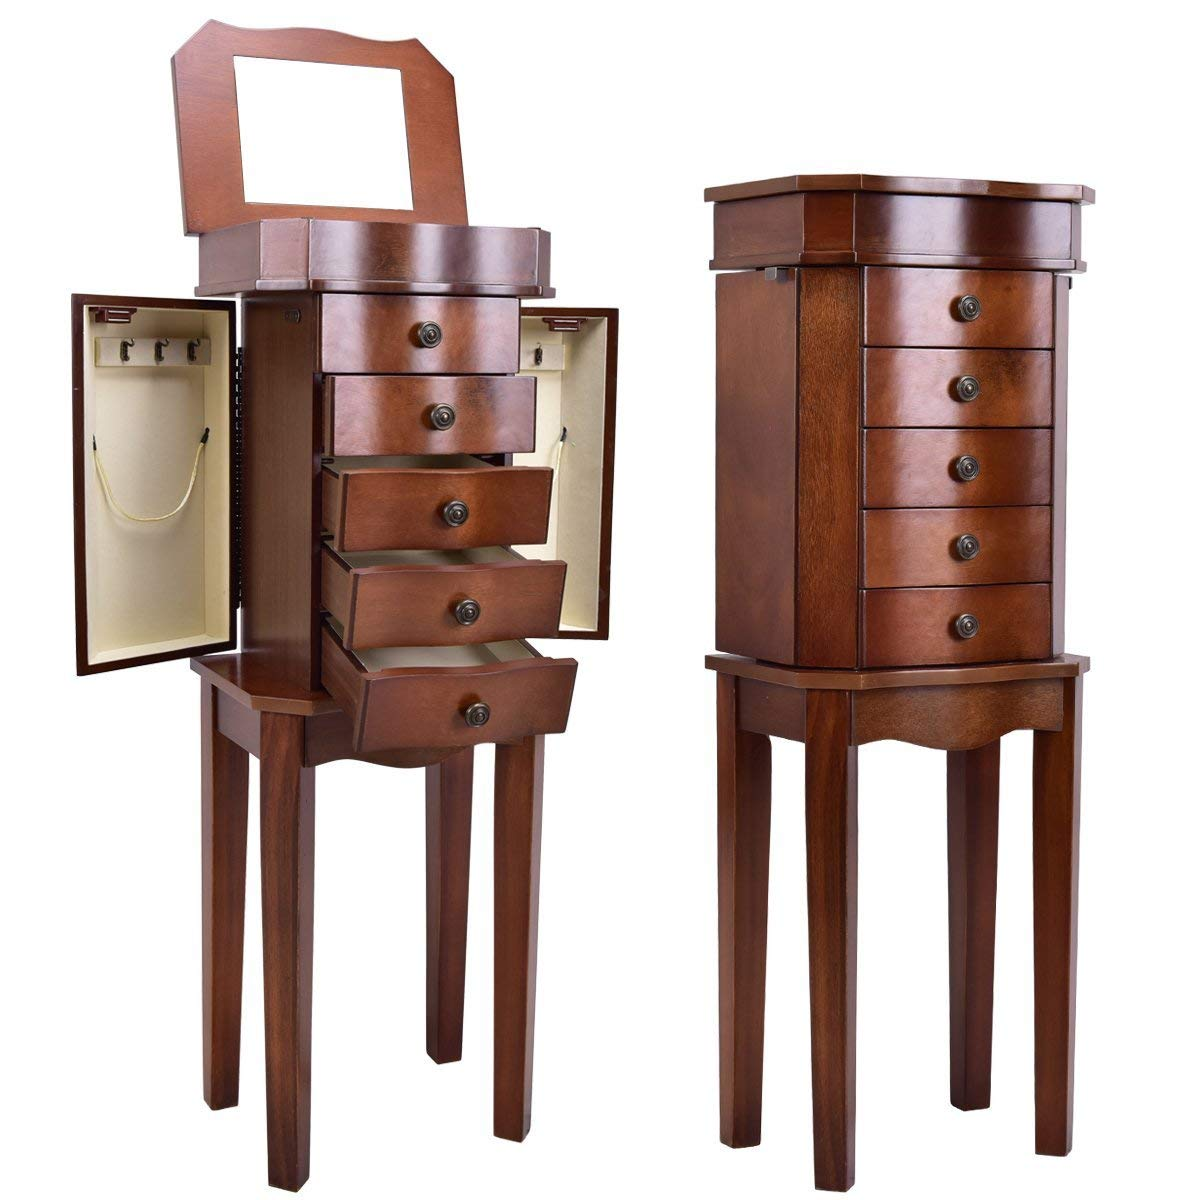 Giantex Jewelry Armoire Chest Cabinet Storage Organizer for Women Standing Wood Style 7 Hooks Swing Door Makeup Display Box Stand Up Accent Furniture Bedroom Armoires w/ 5 Drawers and Mirror (Walnut)